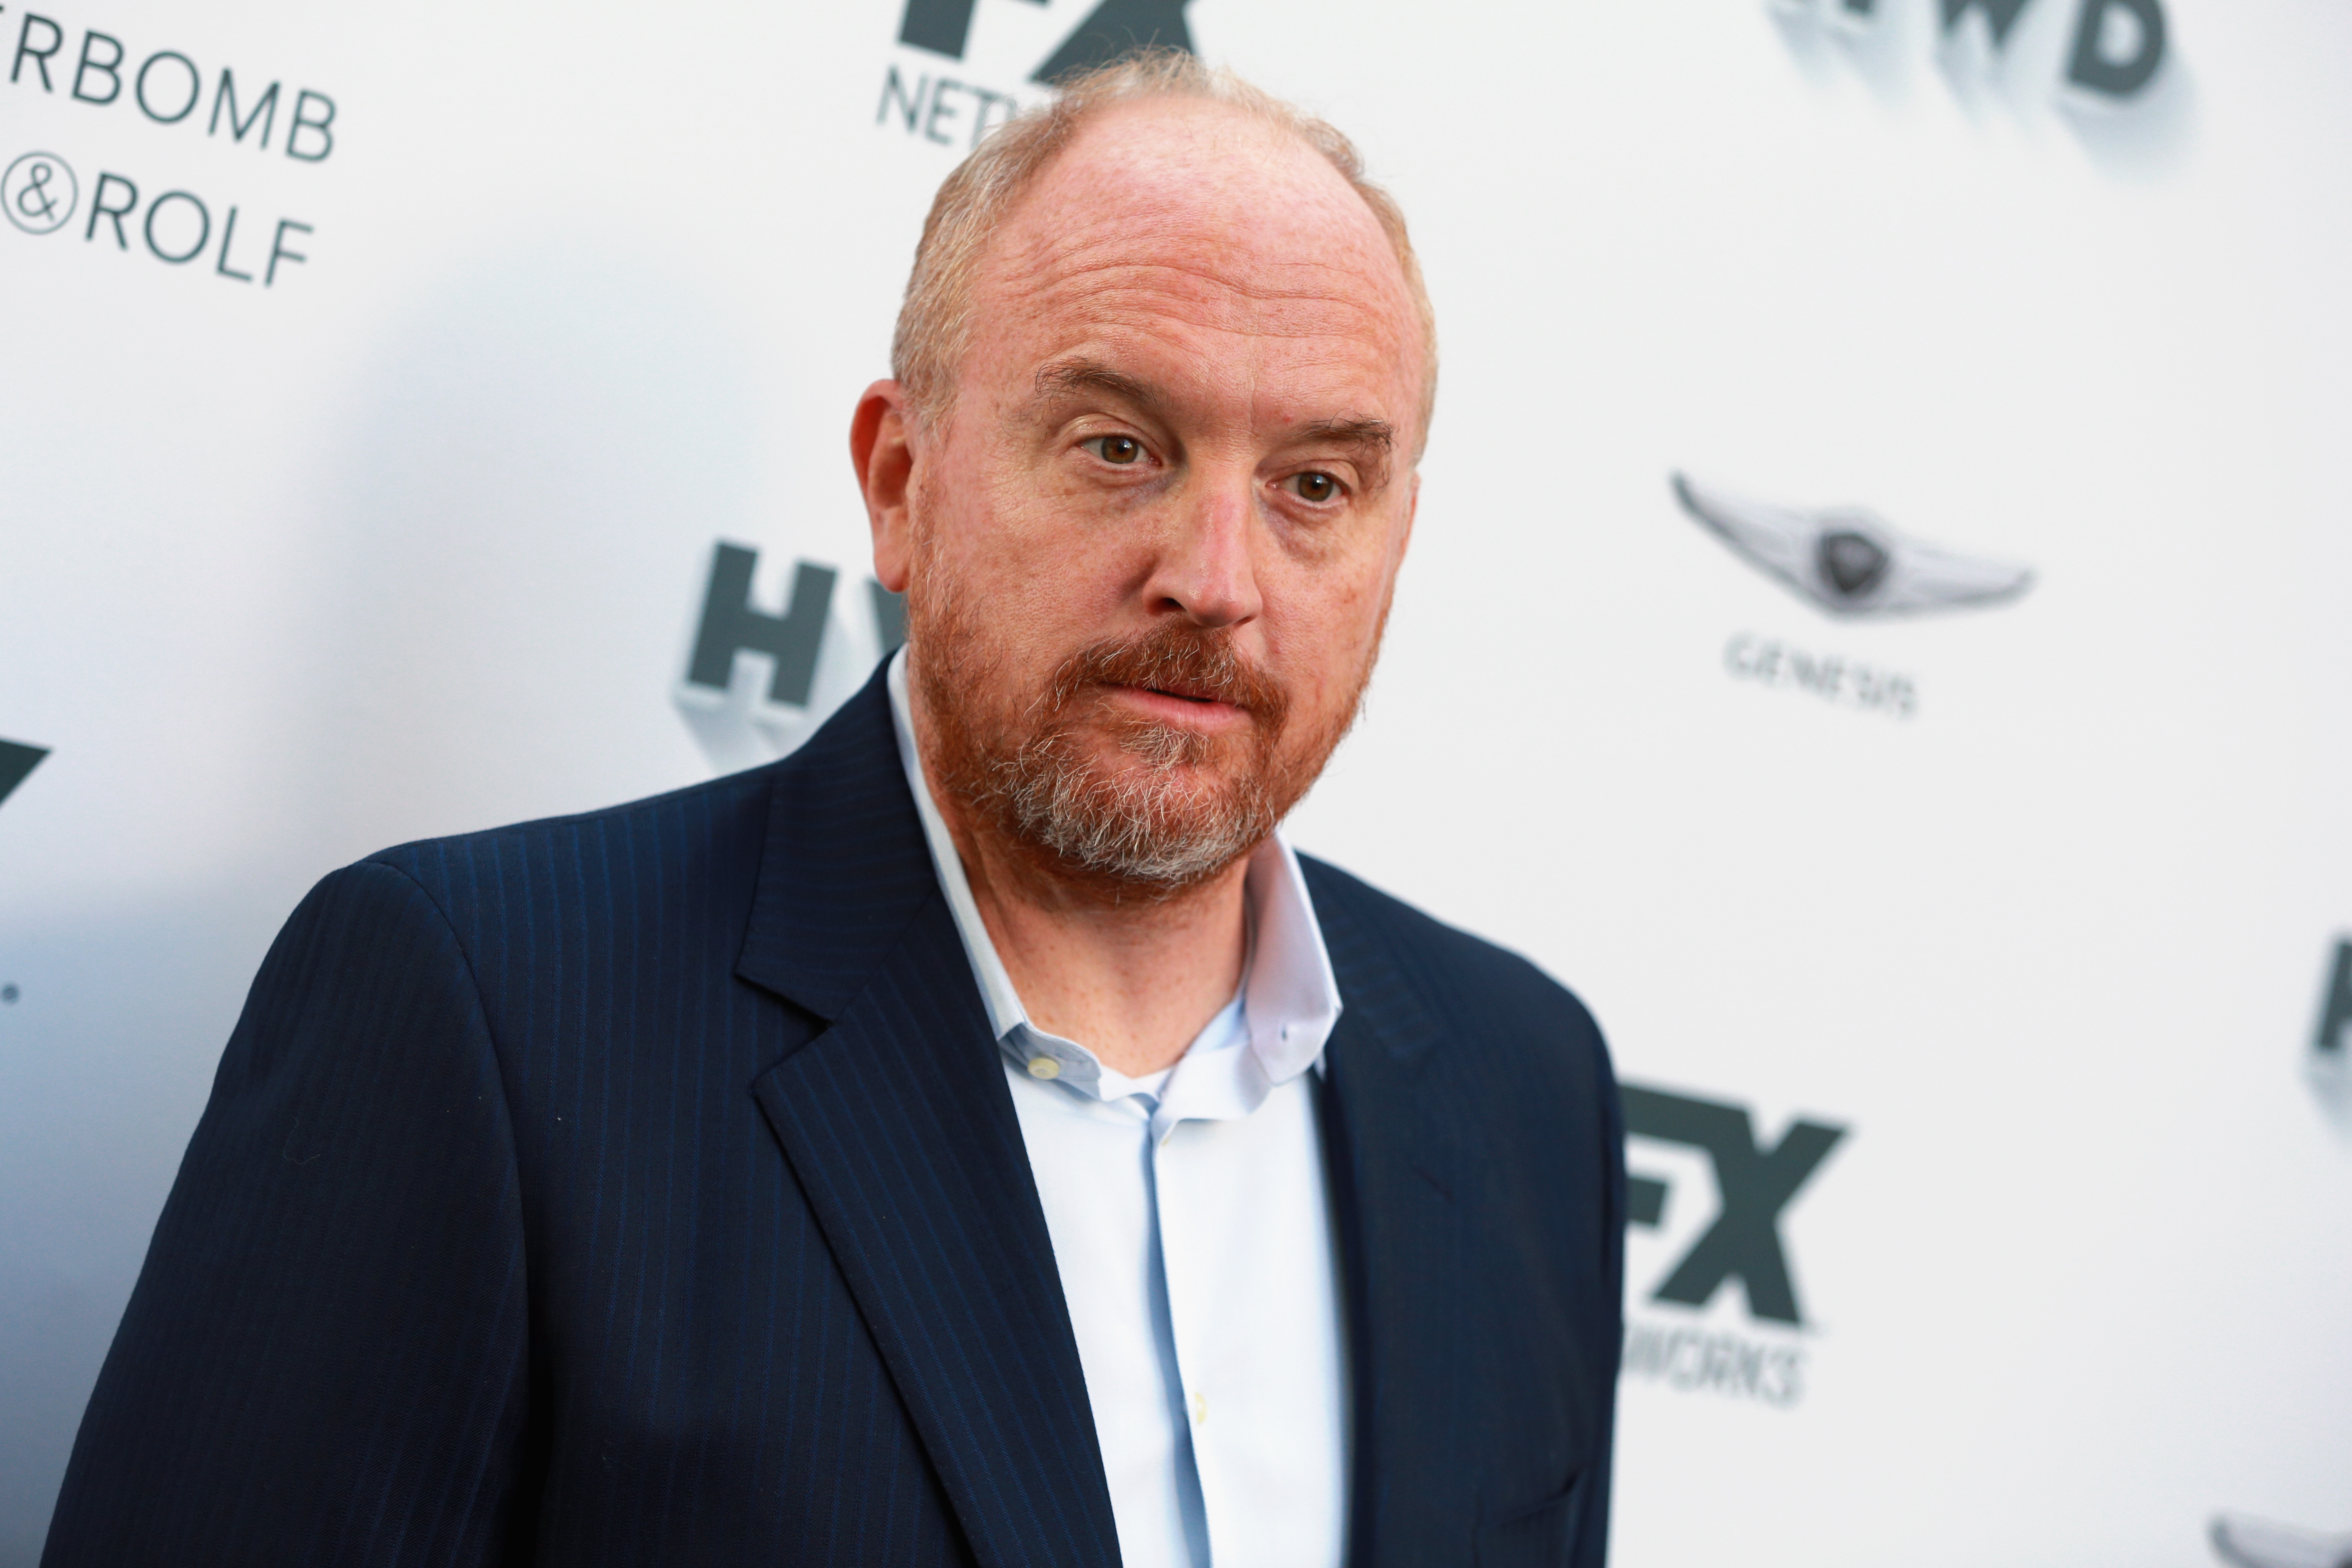 Comedy clubs that book Louis C.K. don't care about their staff's safety